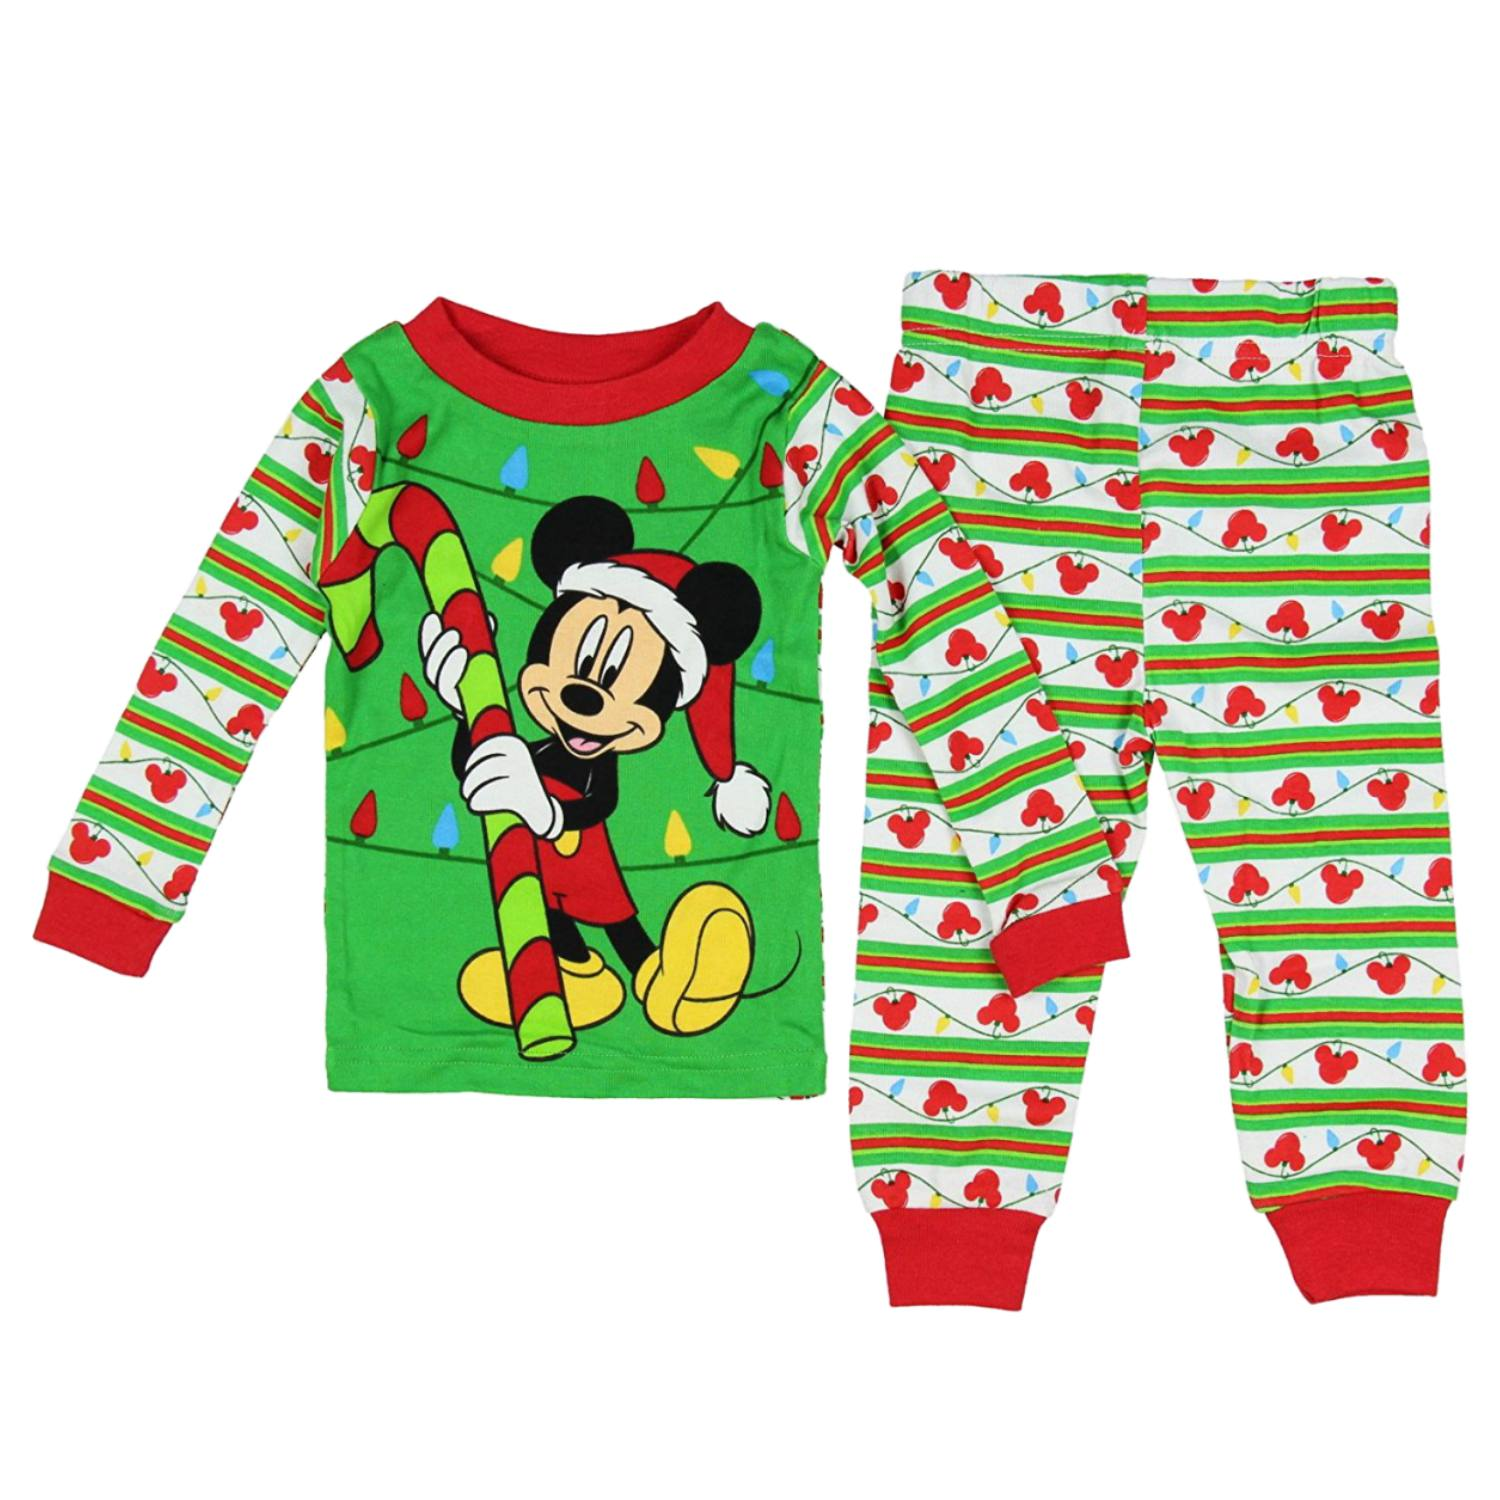 Each 4-piece set of Mickey Mouse pajamas also includes two short sleeve shirts. Designed for babies from months, the garments are made of % cotton for optimal comfort and easy care. Product - Toddler Boy Button Down Pajama Set.